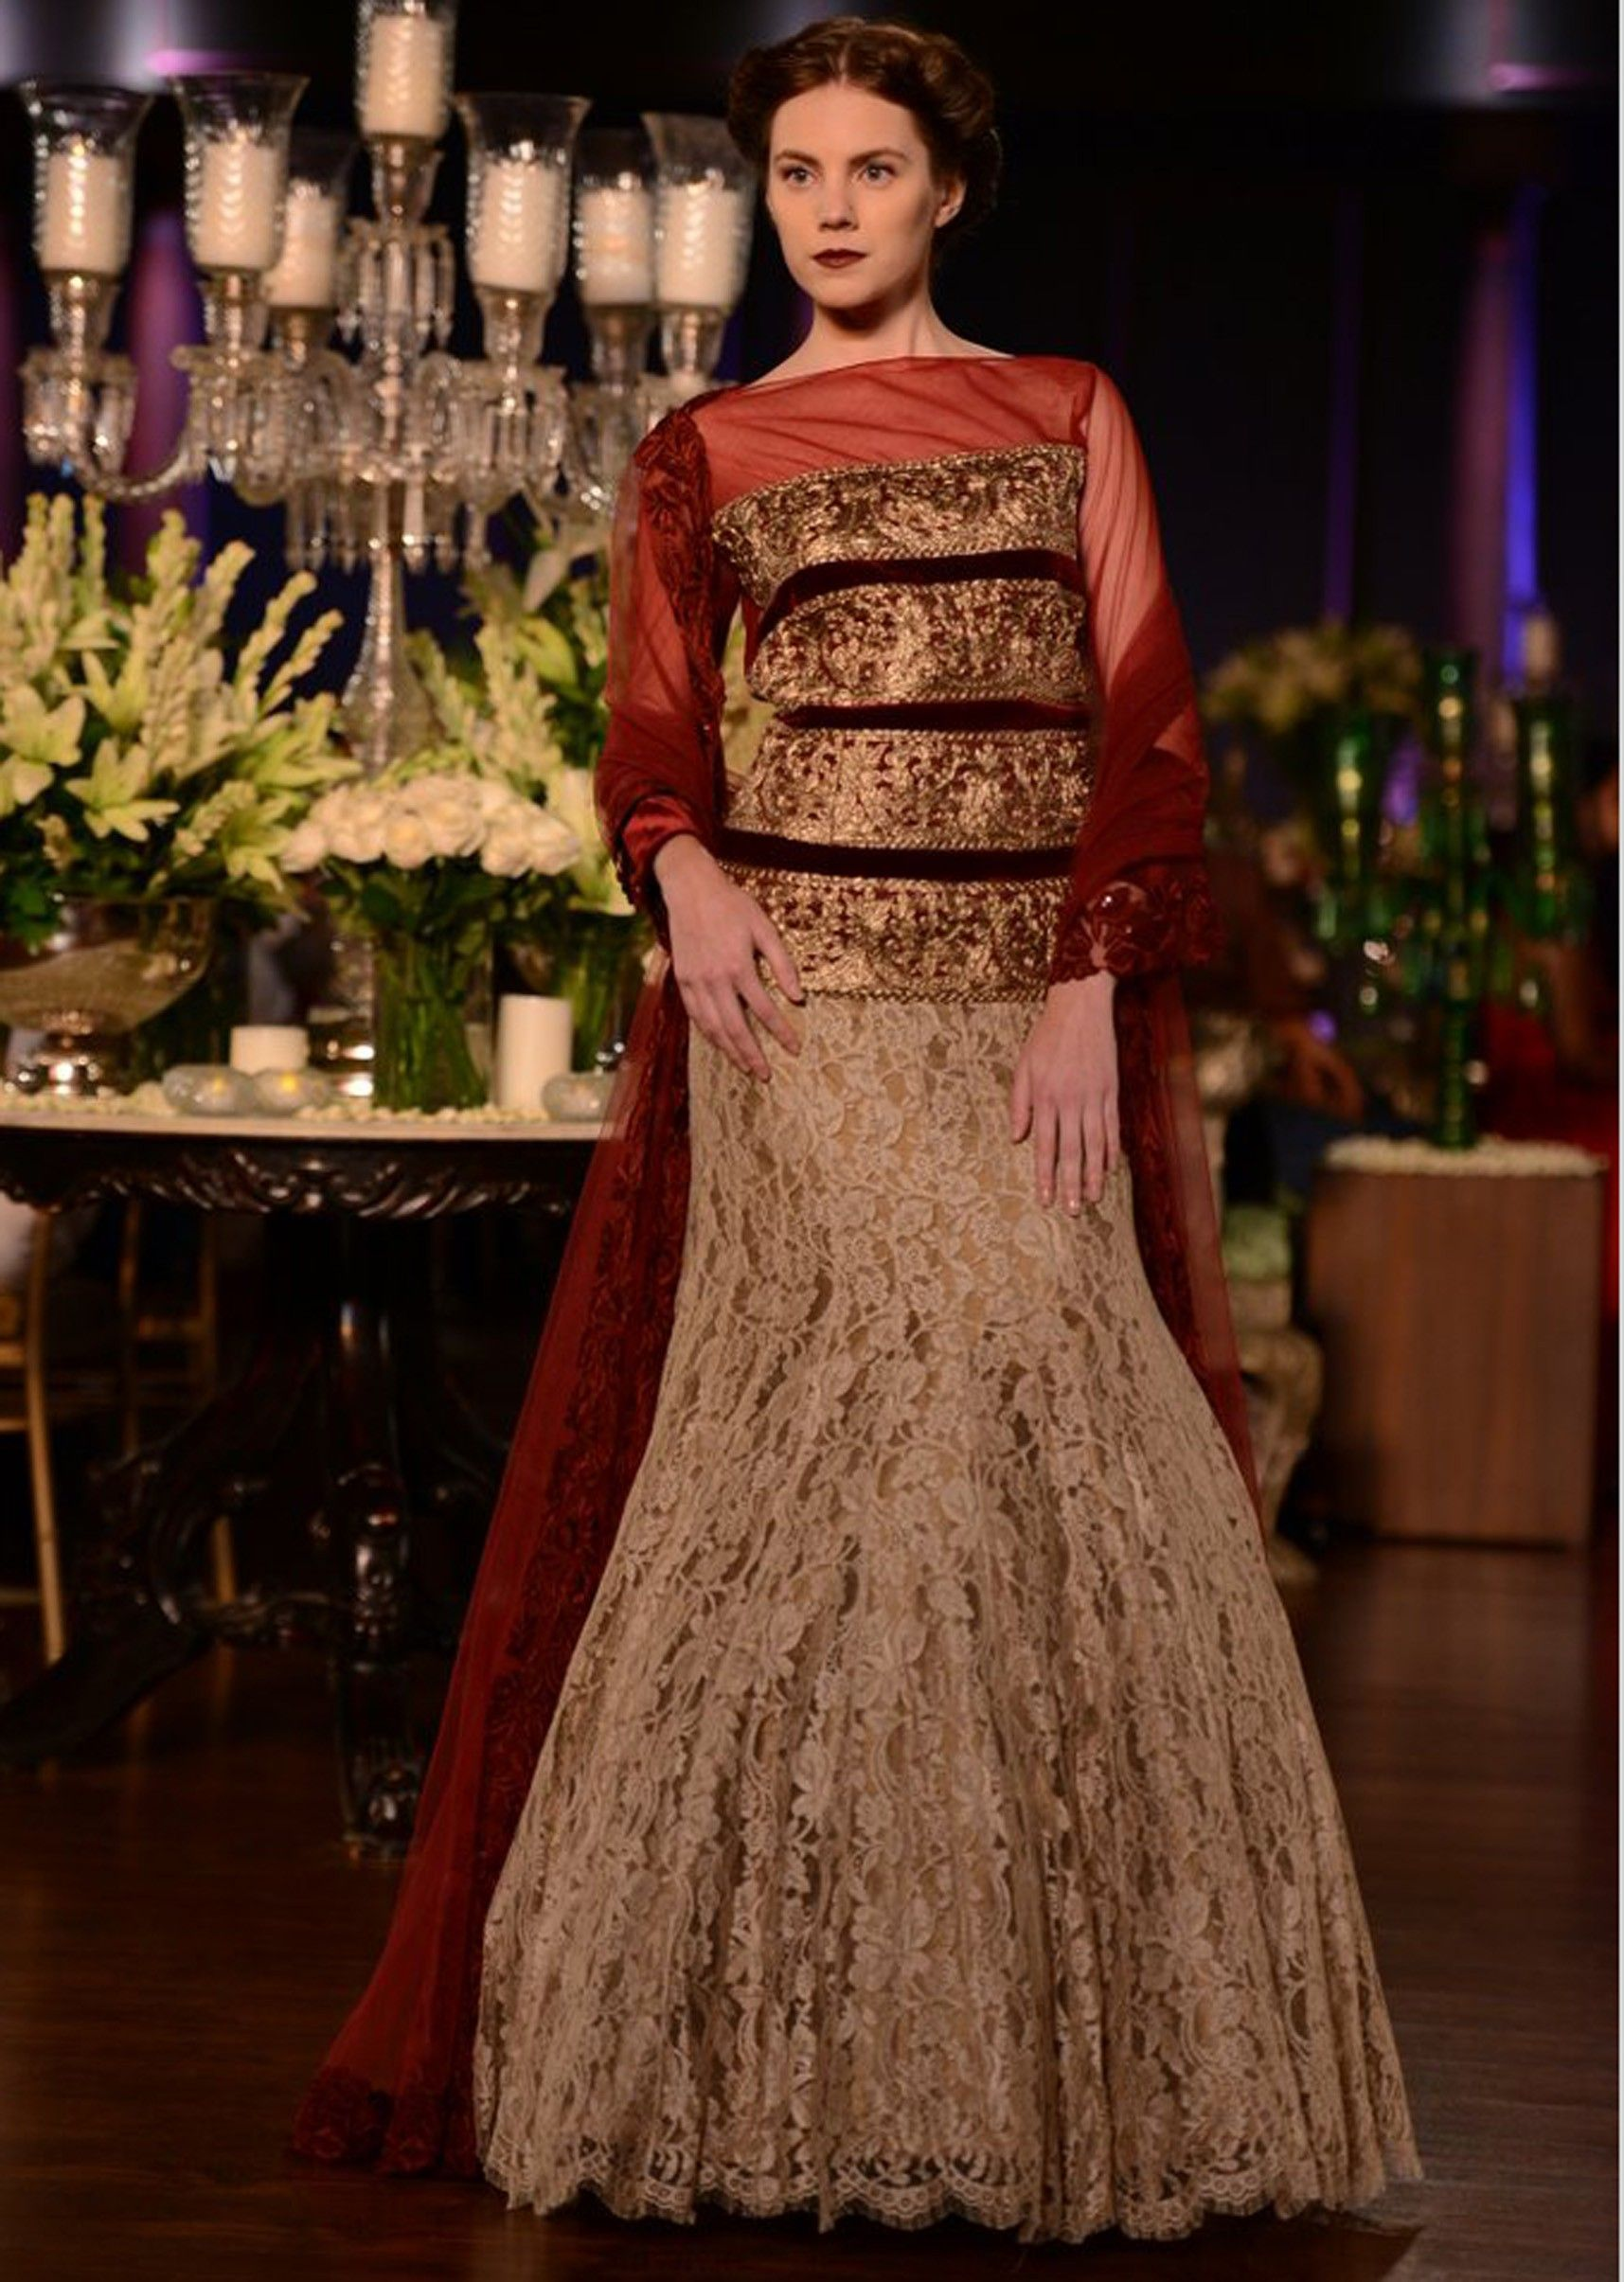 Manish malhotra heavy ethnic collection inspired bythe silhouettes